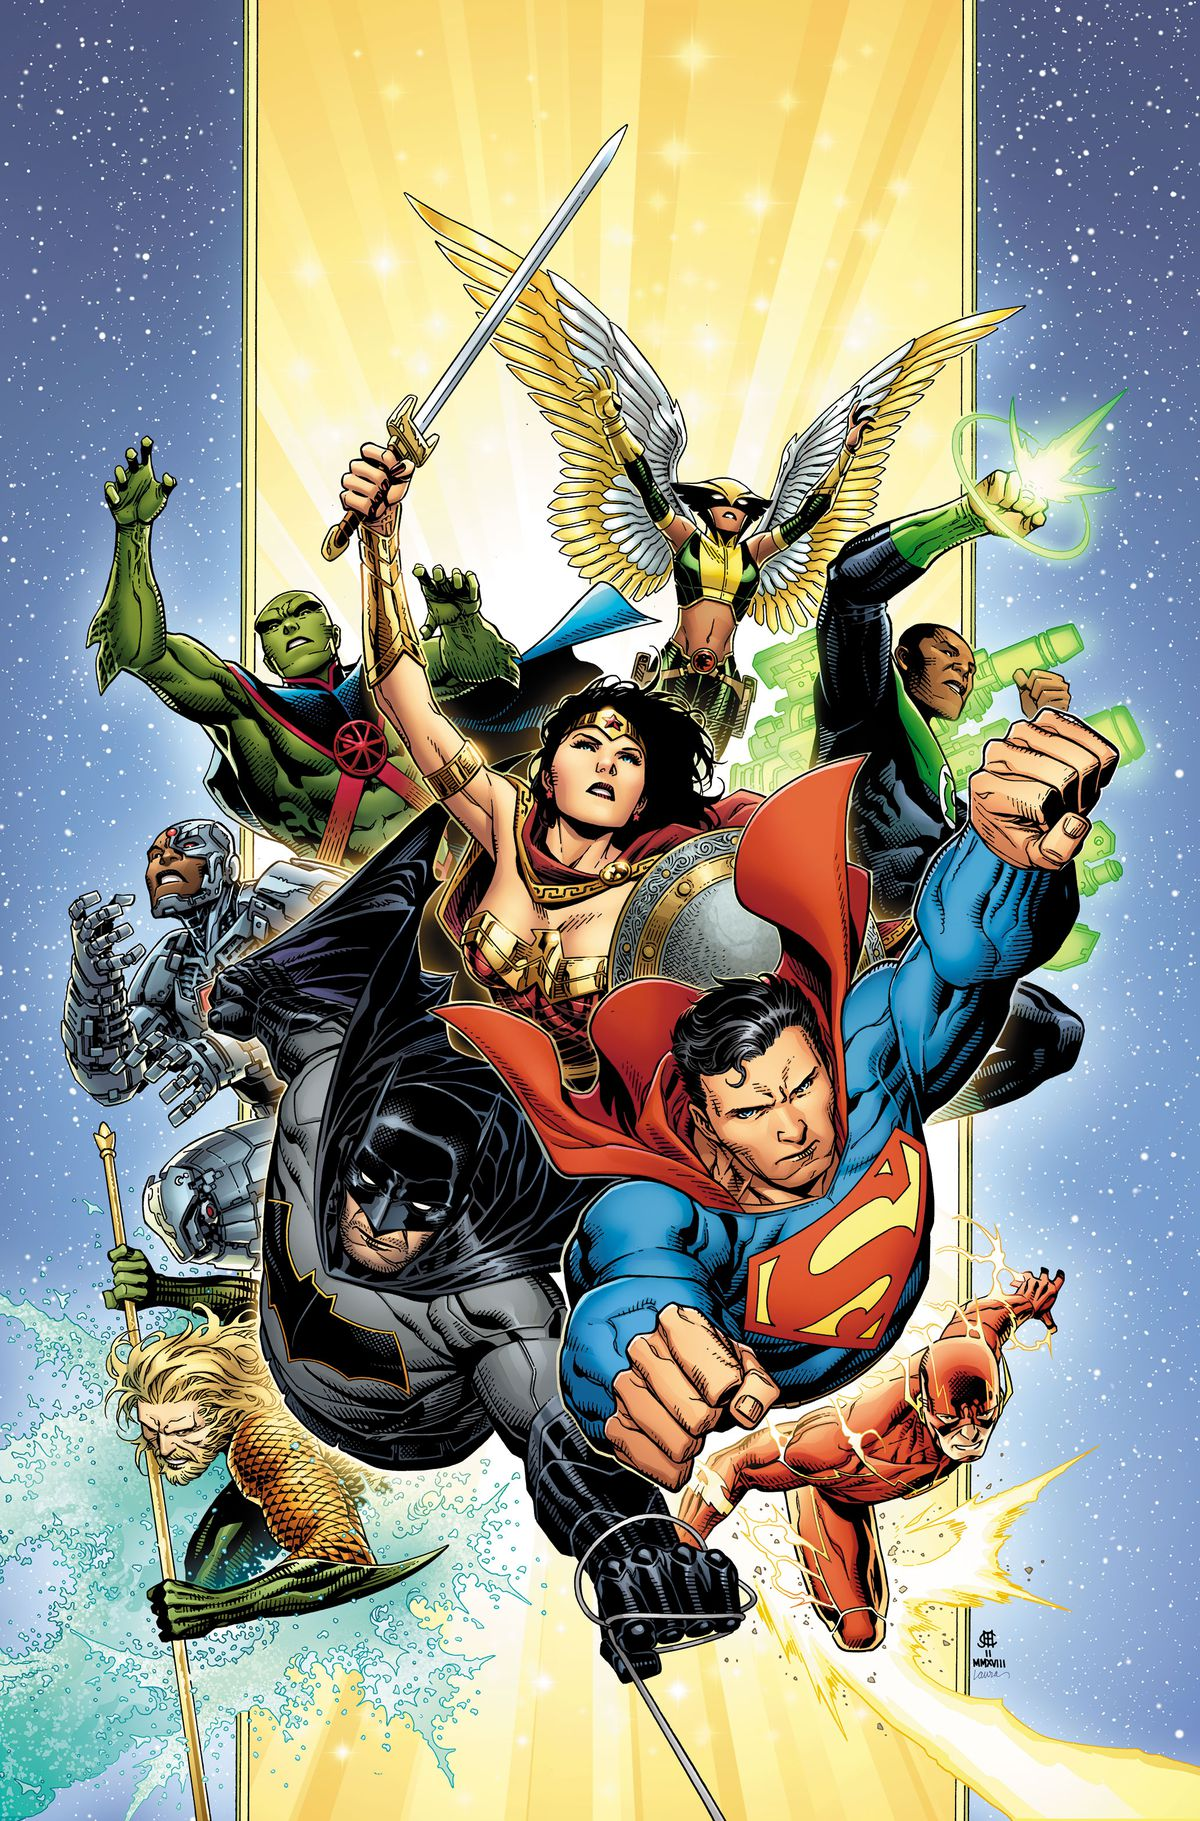 The cover of Justice League #1, DC Comics (2018).